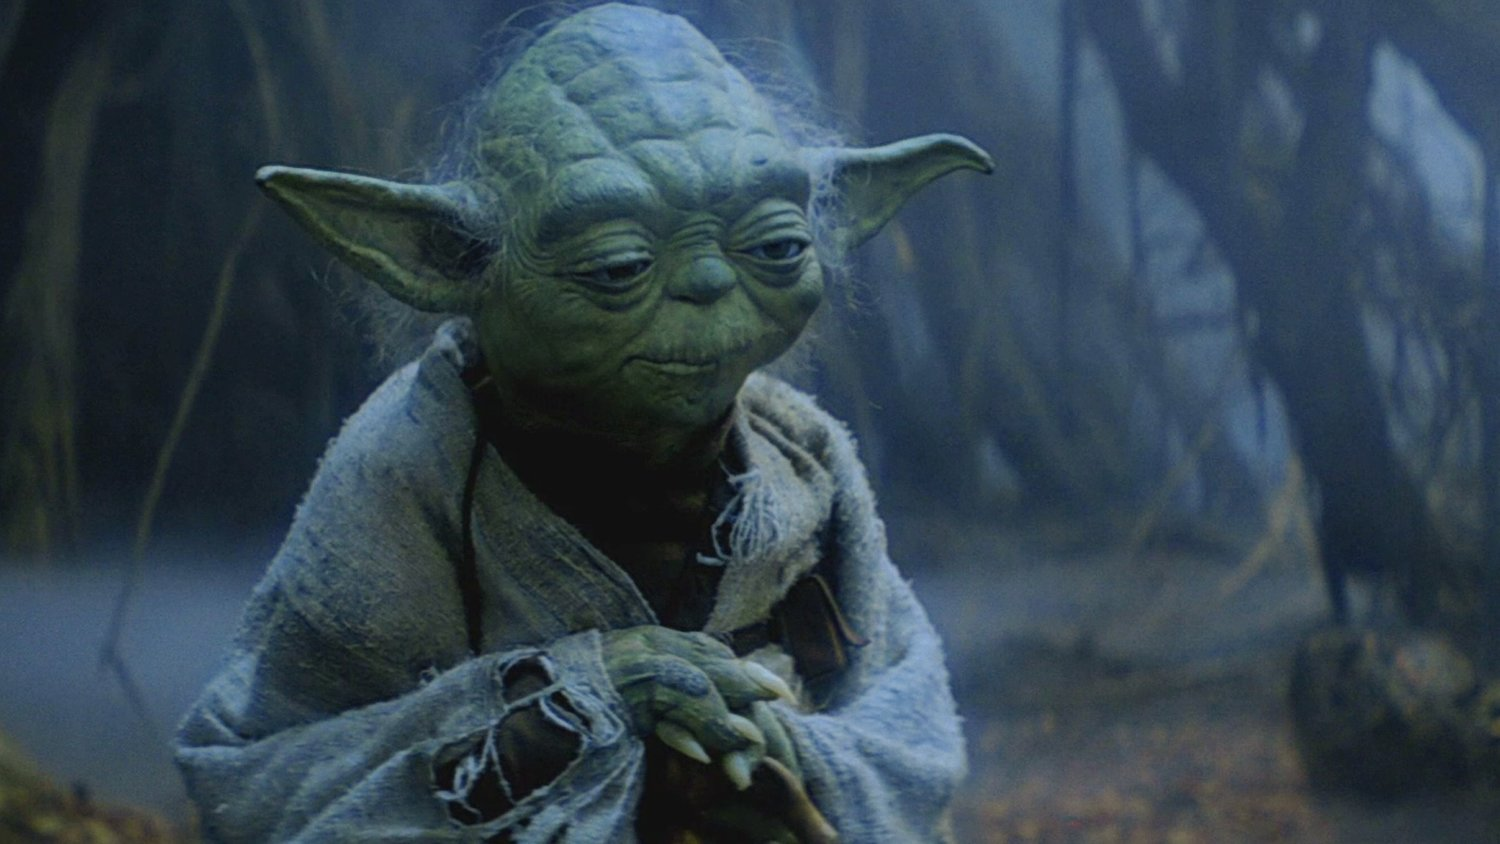 Frank Oz Might Be Reprising His Role as Yoda in STAR WARS: THE LAST JEDI